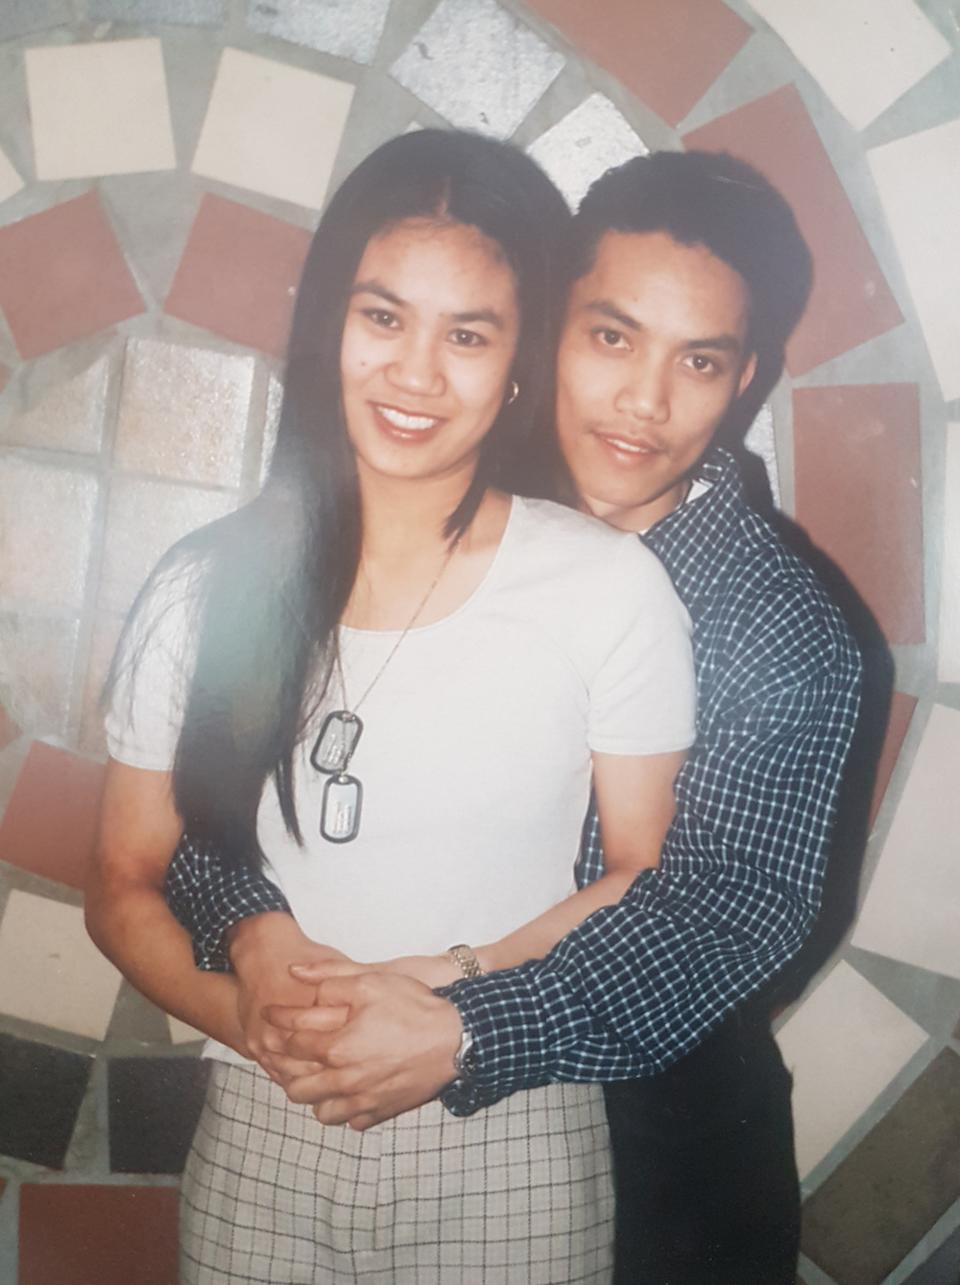 Michelle and David's first picture together in 1993. (PA Real Life/Collect)